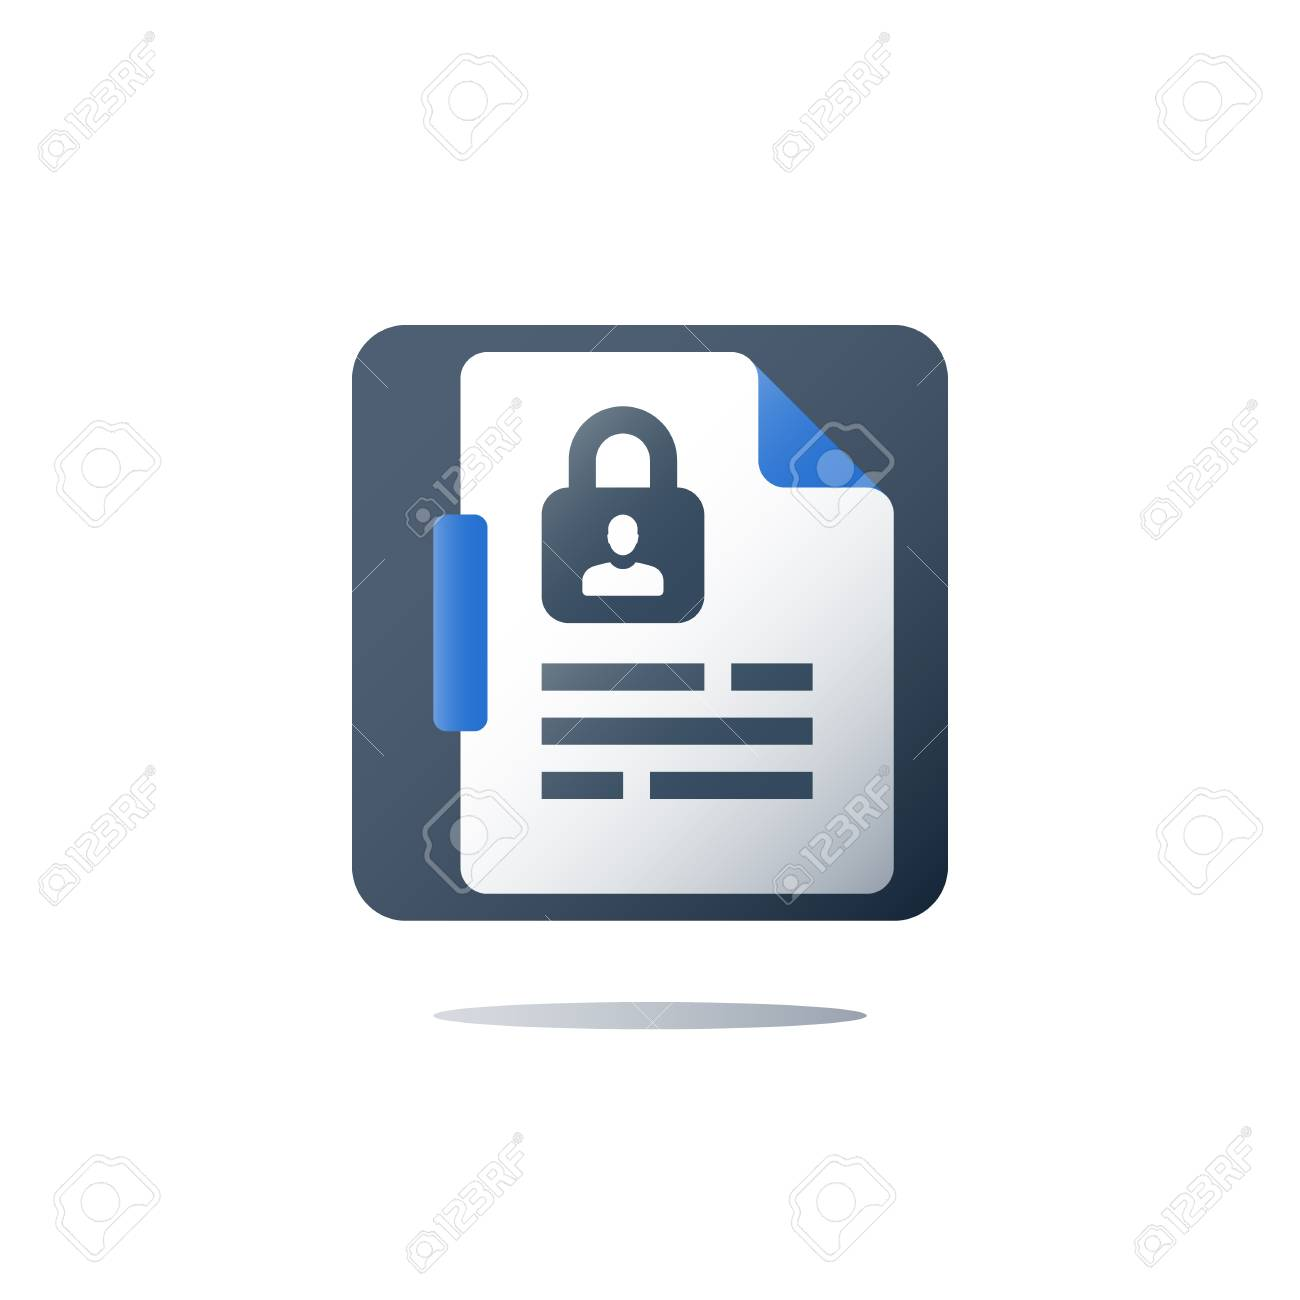 Personal Data Security Gdpr Concept Privacy Policy Contract Nondisclosure Secret Document